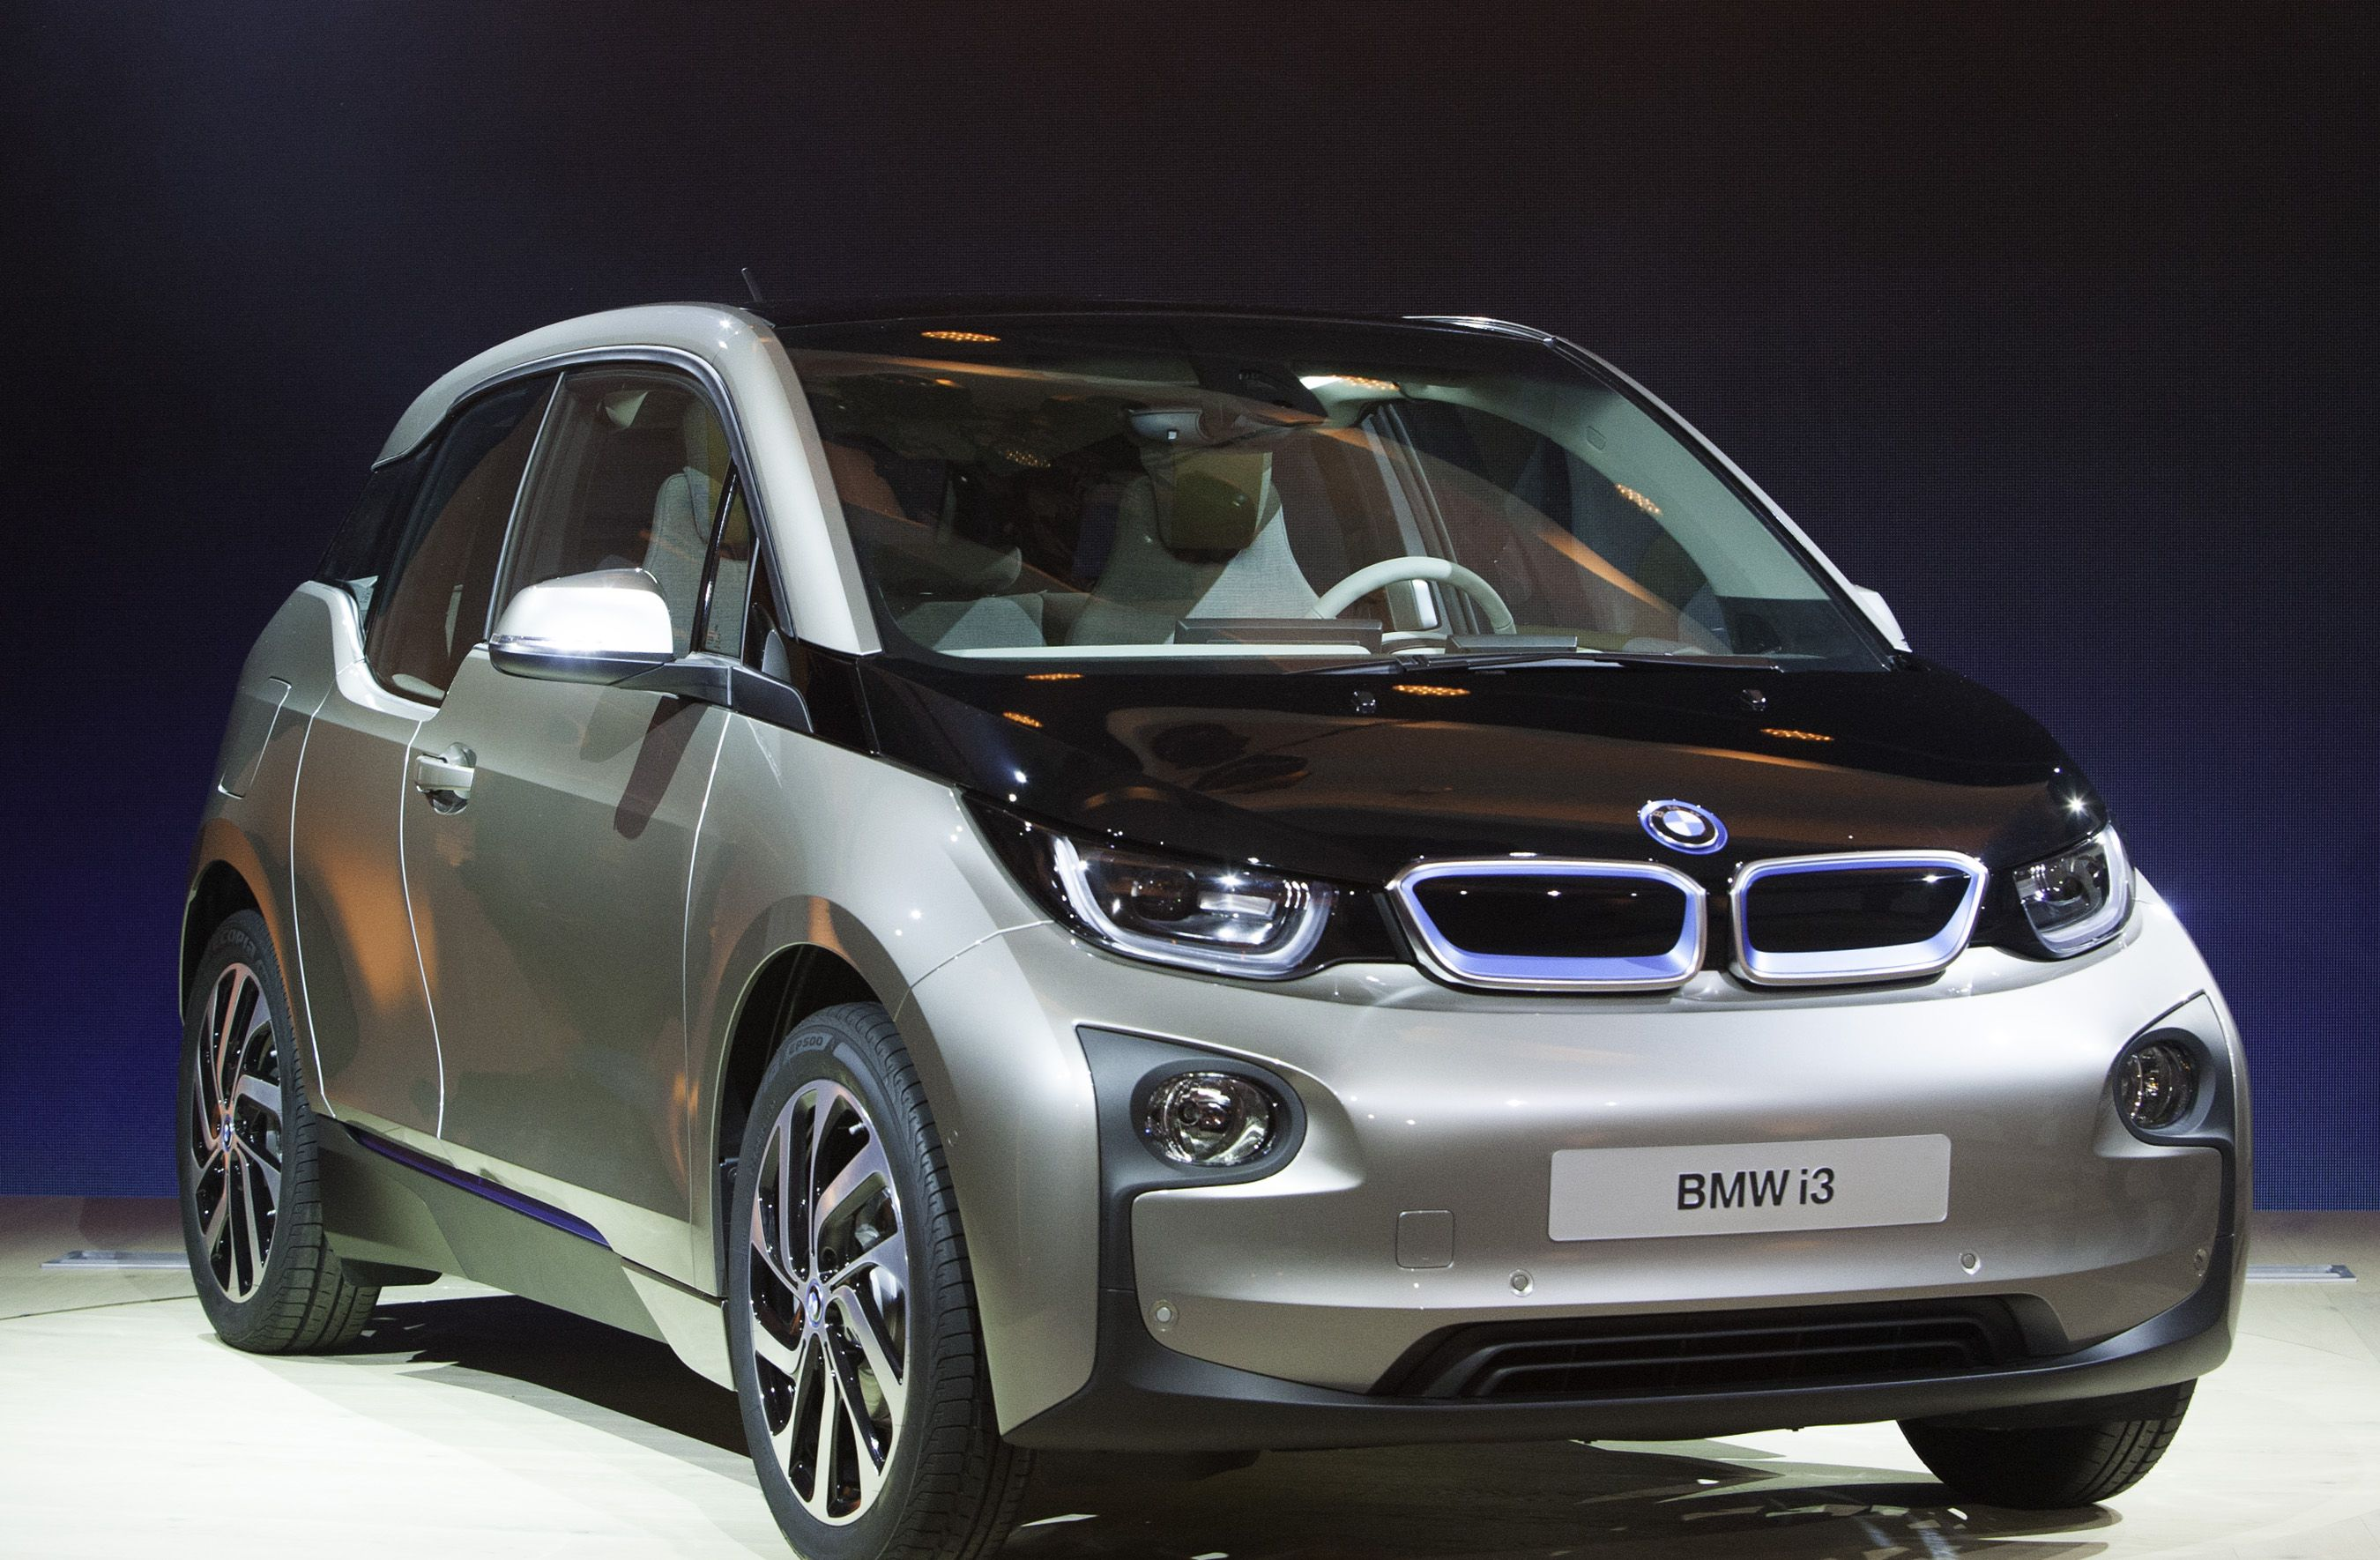 The Bmwi3 Fully Electric Car Made Primarily Of Carbon Fiber Is Unveiled In Newyork During A Simultaneous Launch With Beijing And London On Monday